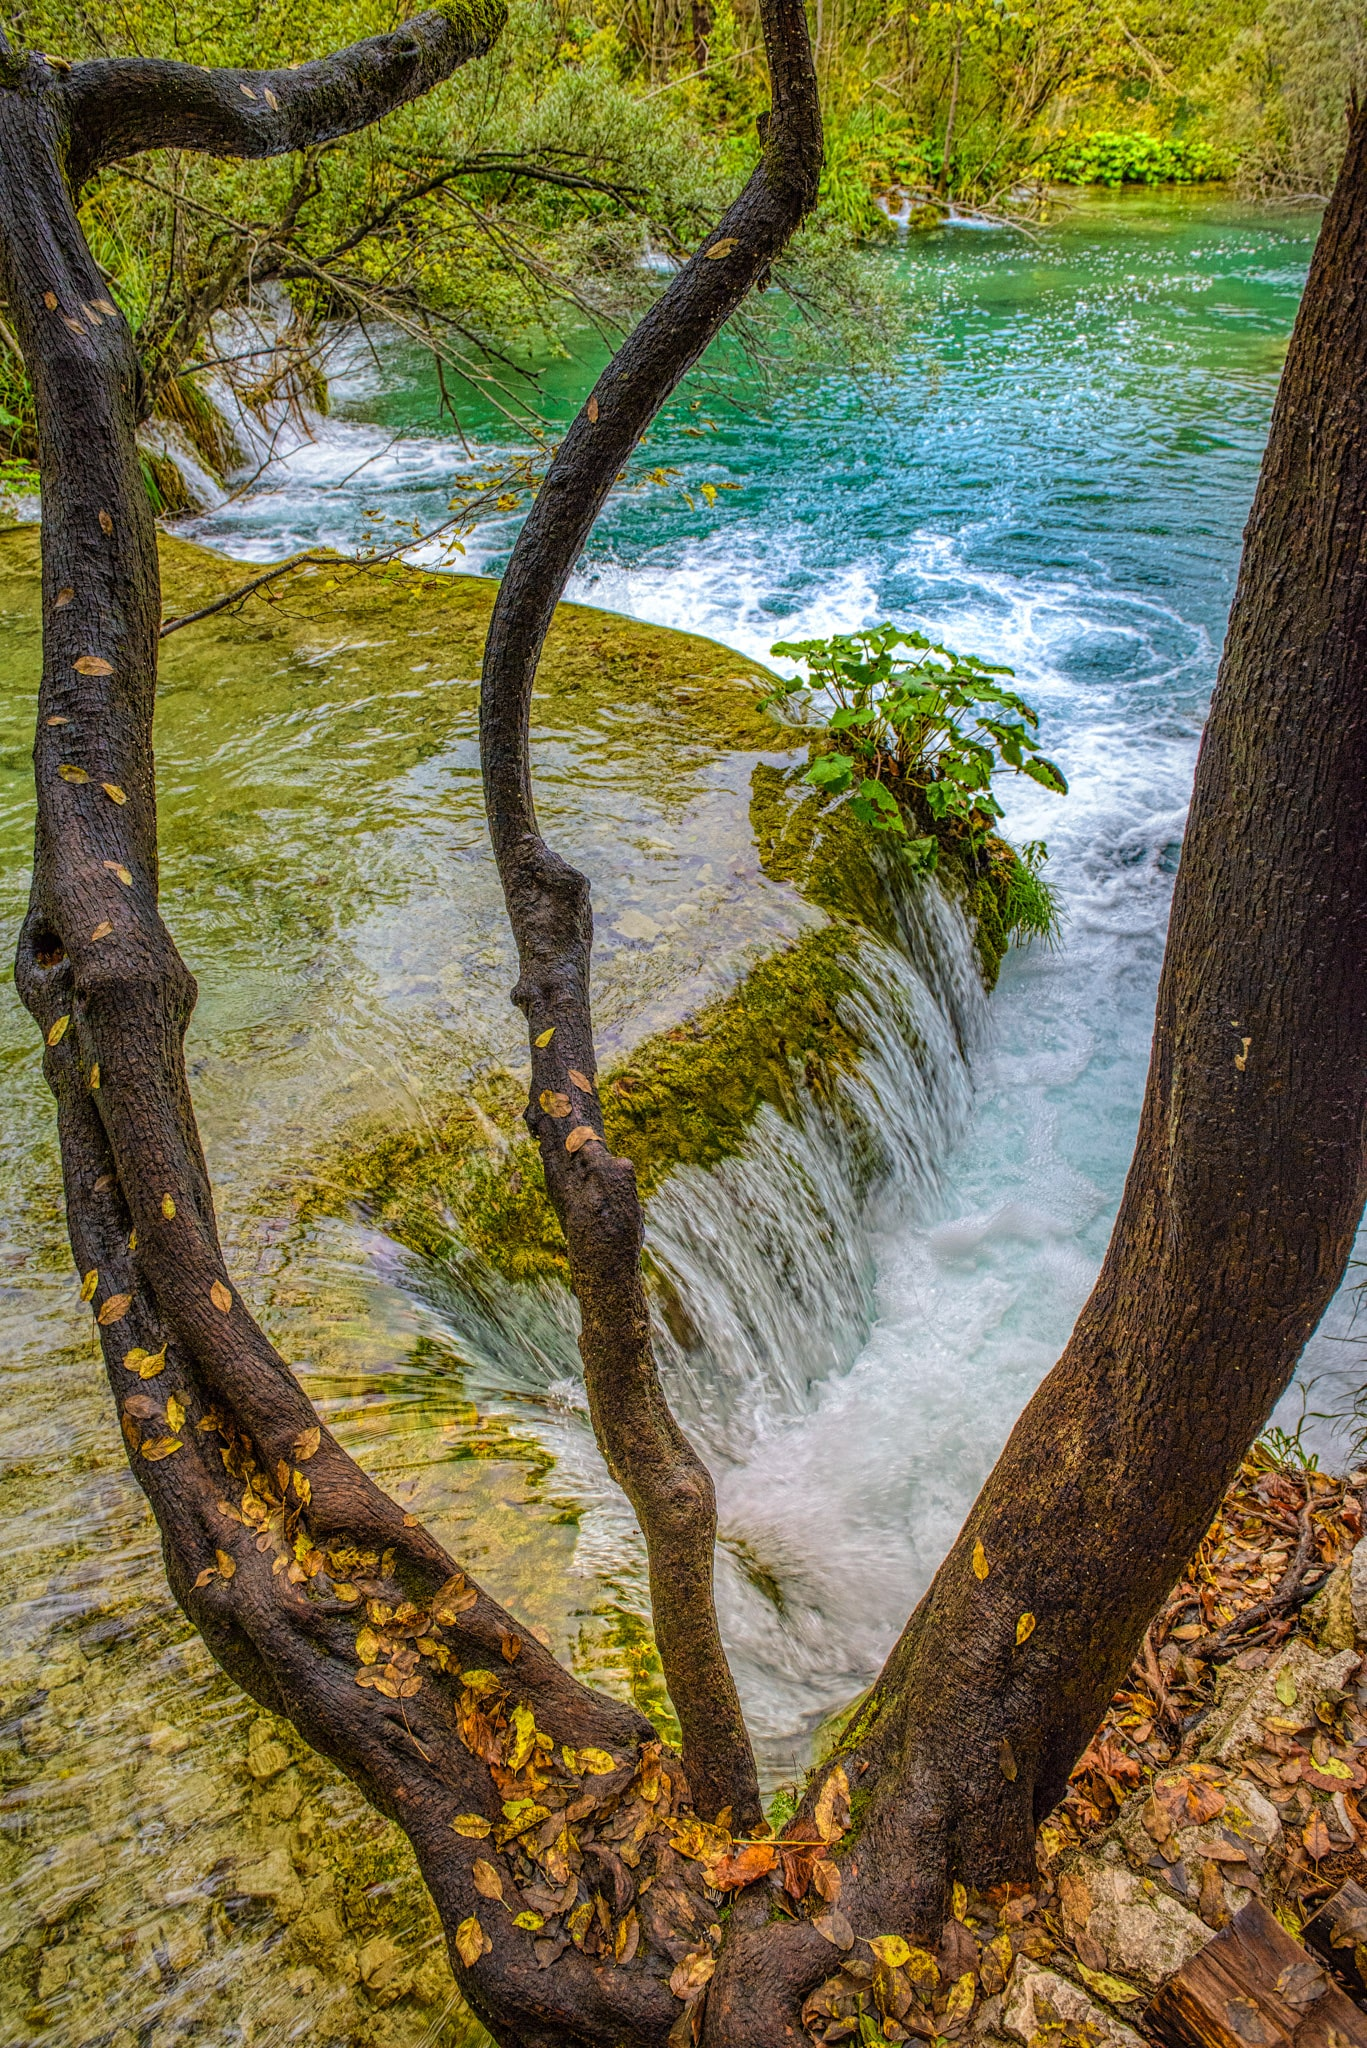 Autumn leaves adorn a tree leaning out over waterfalls in Lake Milanovac in Plitvice Lakes National Park in Croatia.